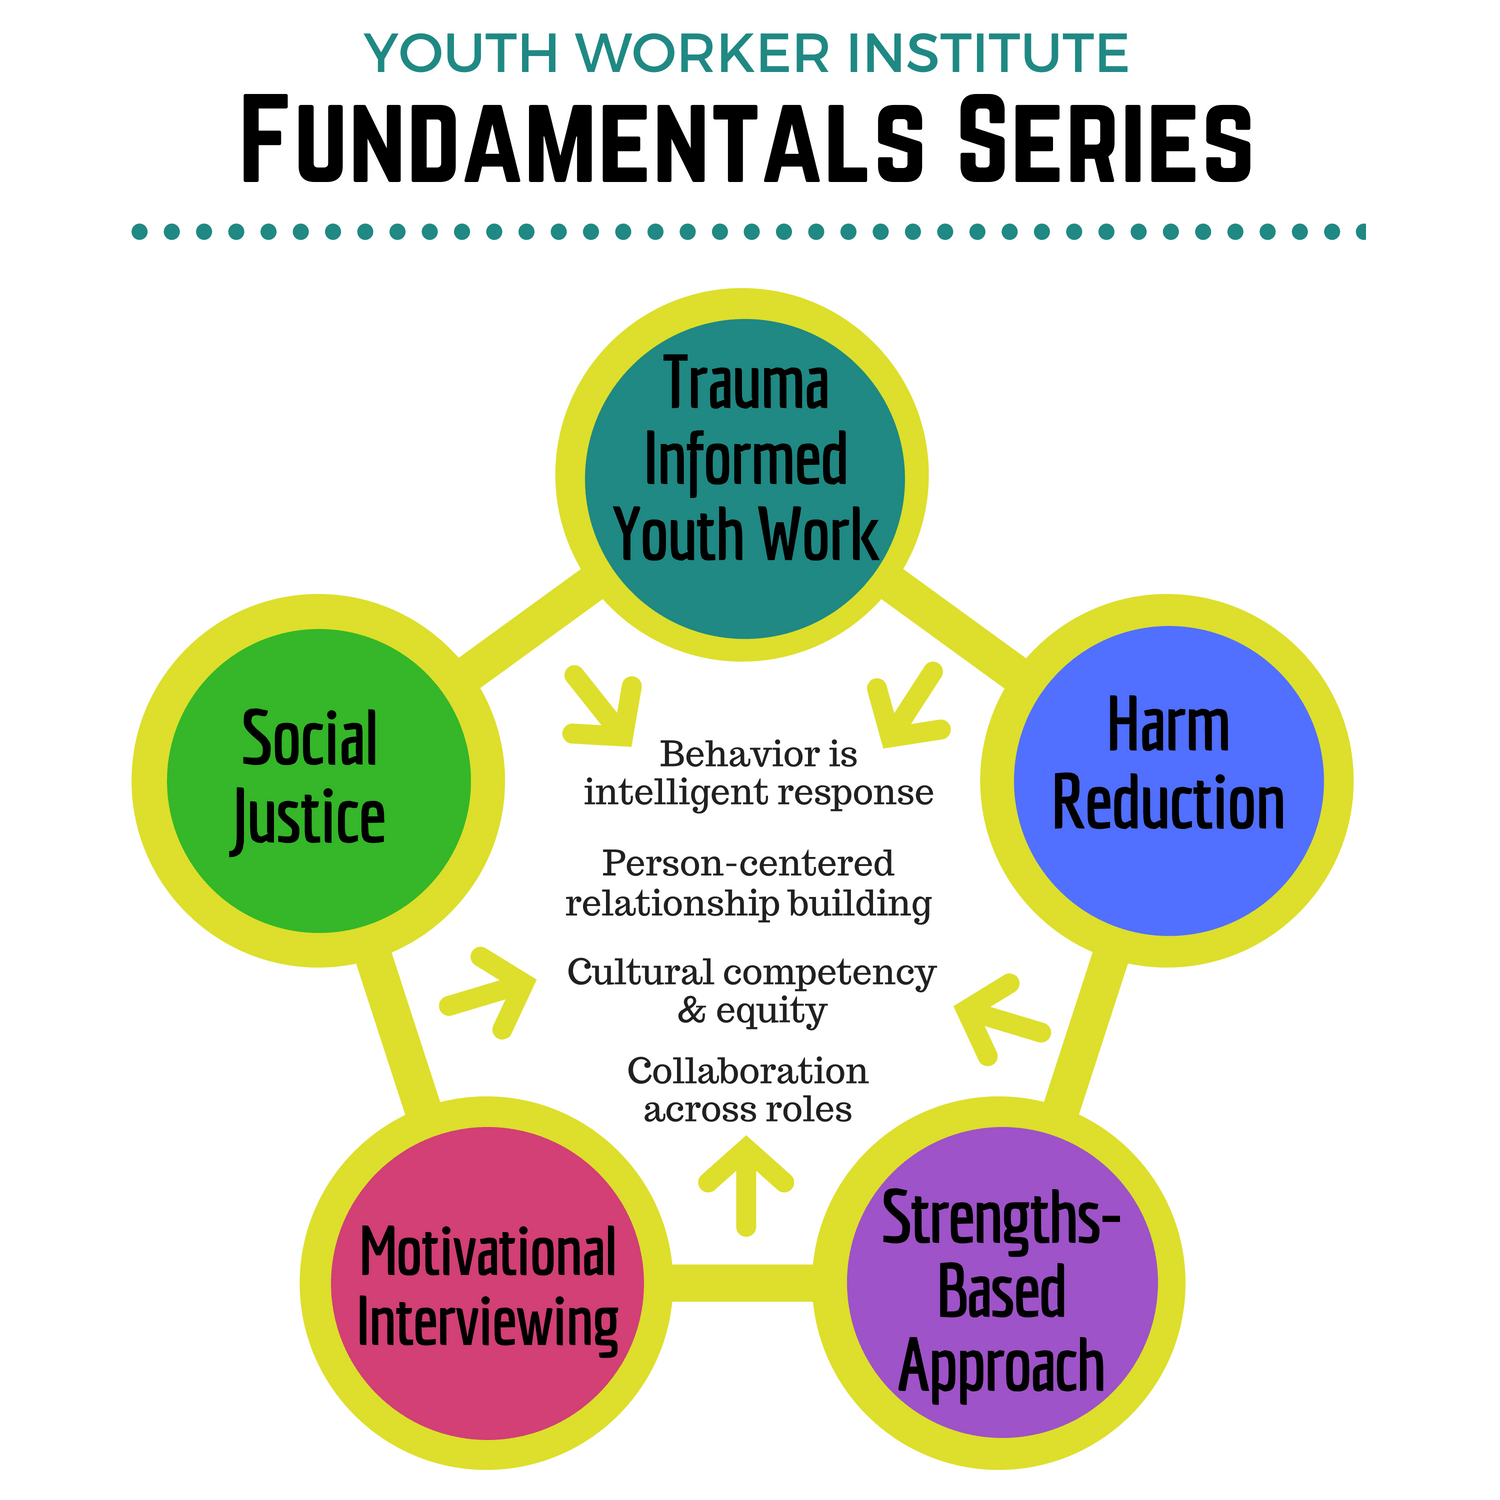 Fundamentals Series Youth Worker Institute